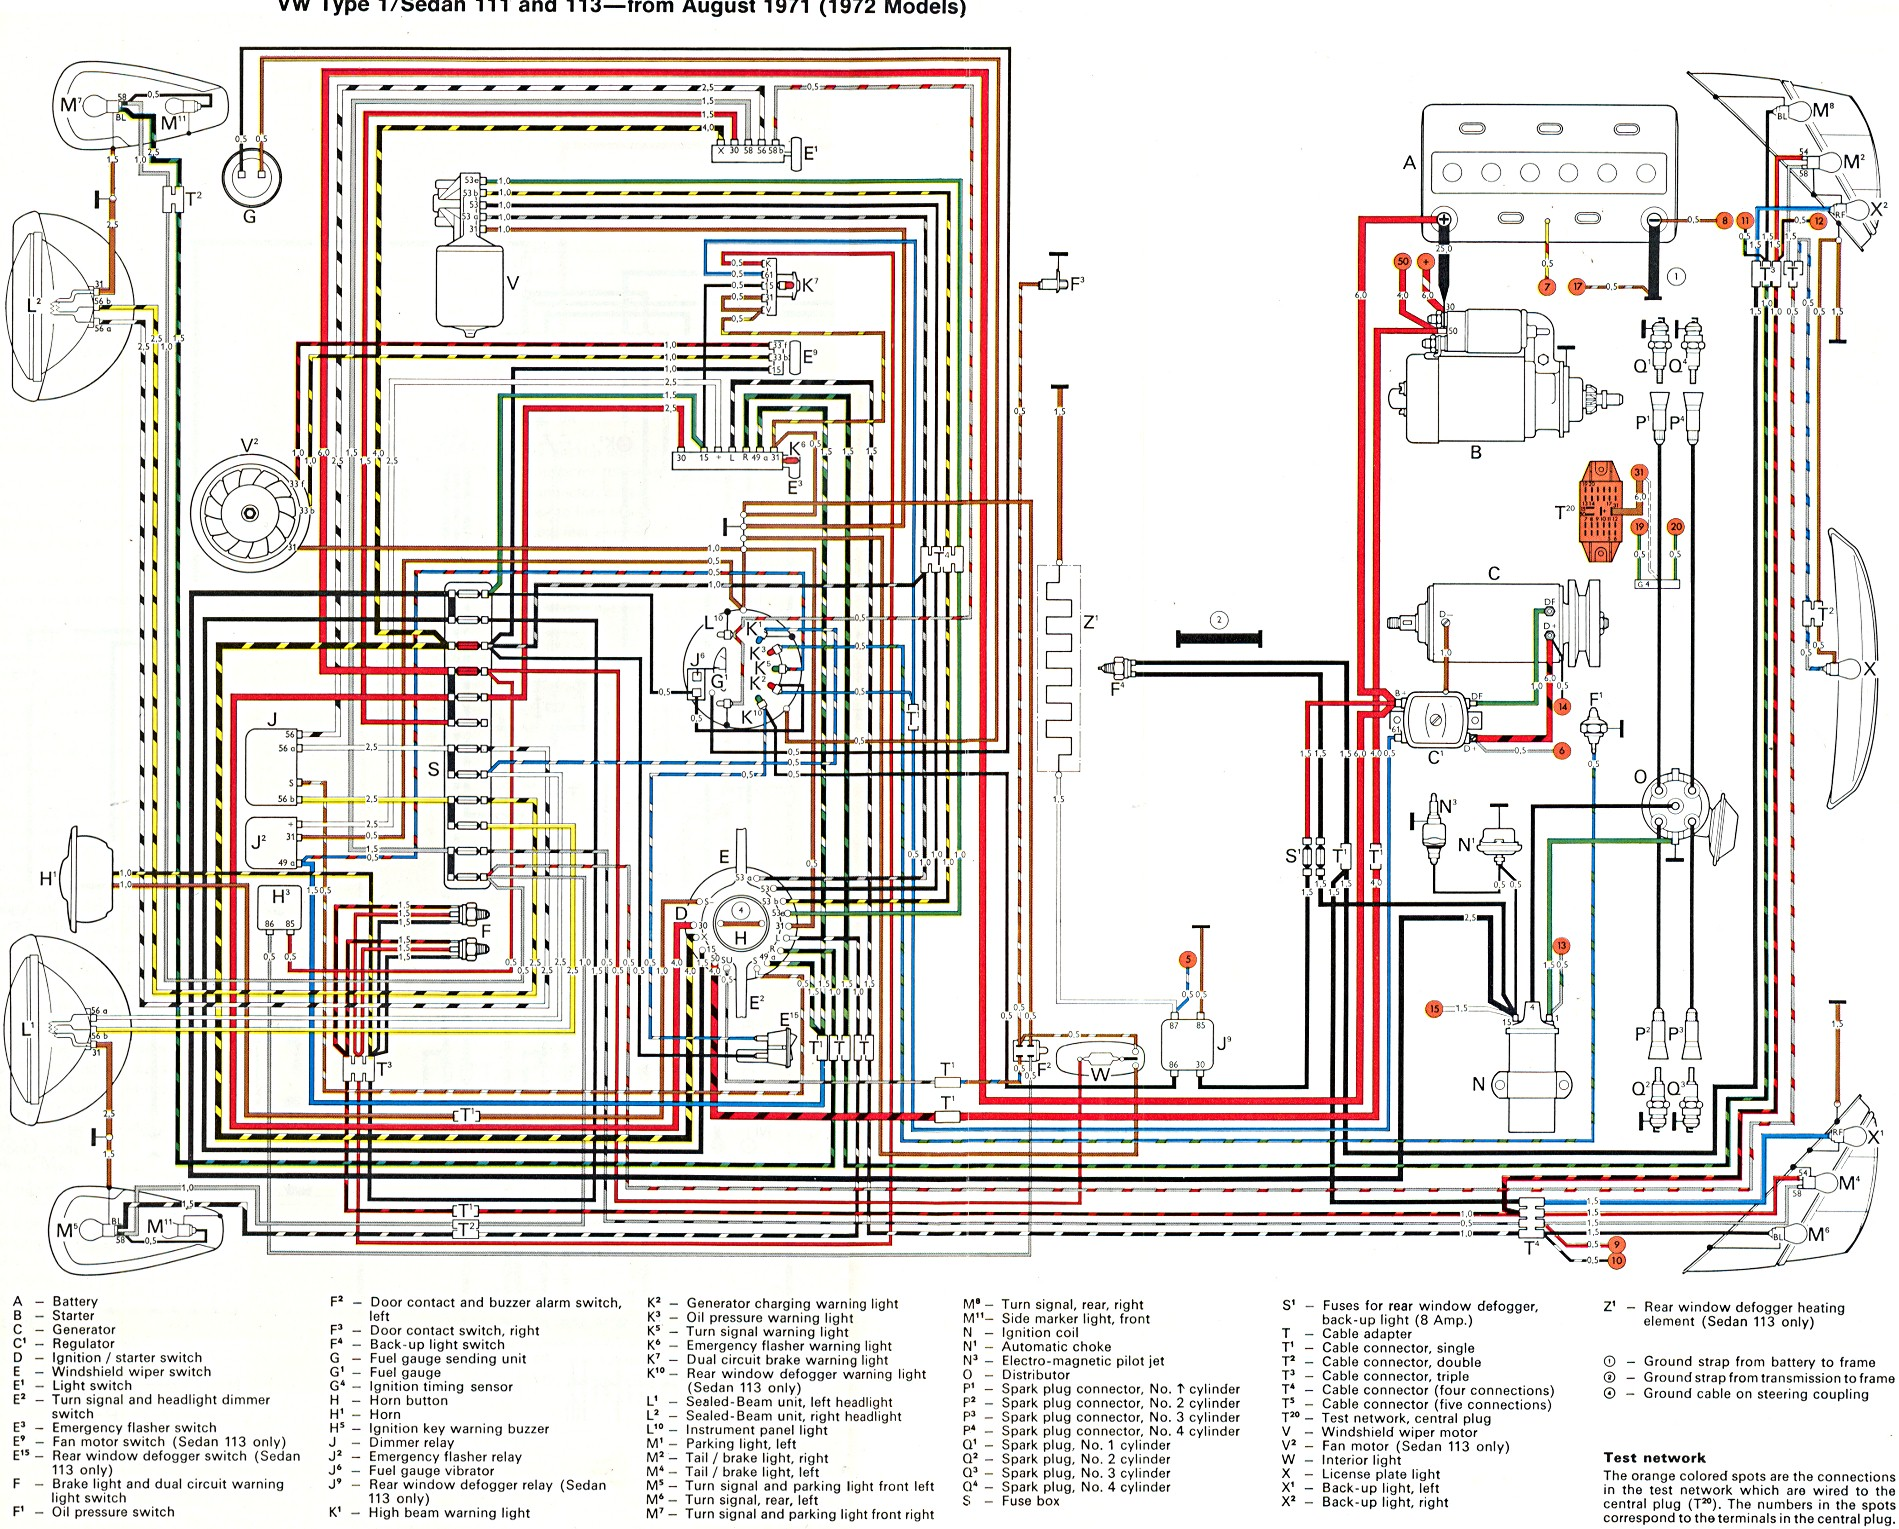 bug_std_super_72?resize=665%2C535 wiring diagram for 1971 vw bus the wiring diagram readingrat net 1974 Super Beetle Wiring Diagram at reclaimingppi.co